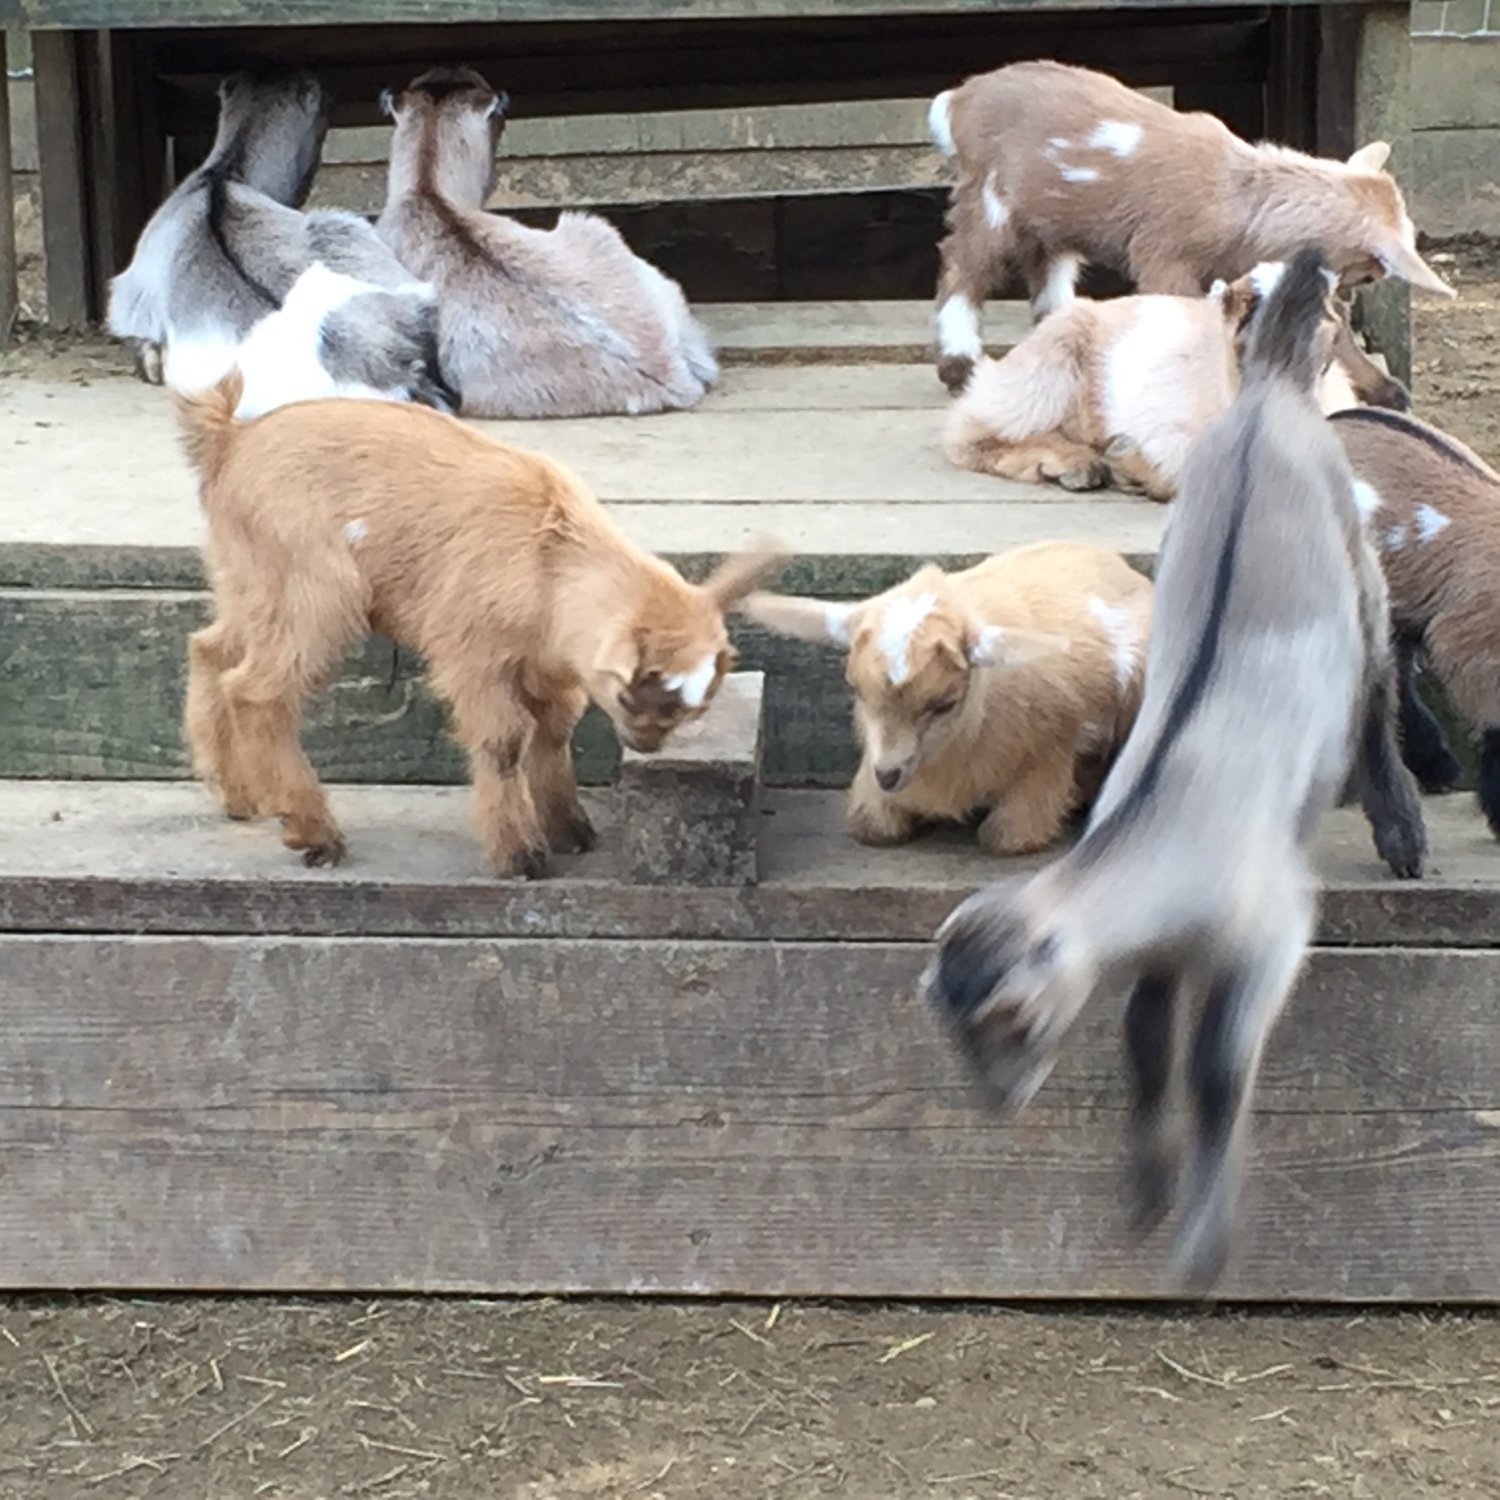 Wingin' it Farms Livestock Guardian Dogs 12 months with new kids 006.JPG